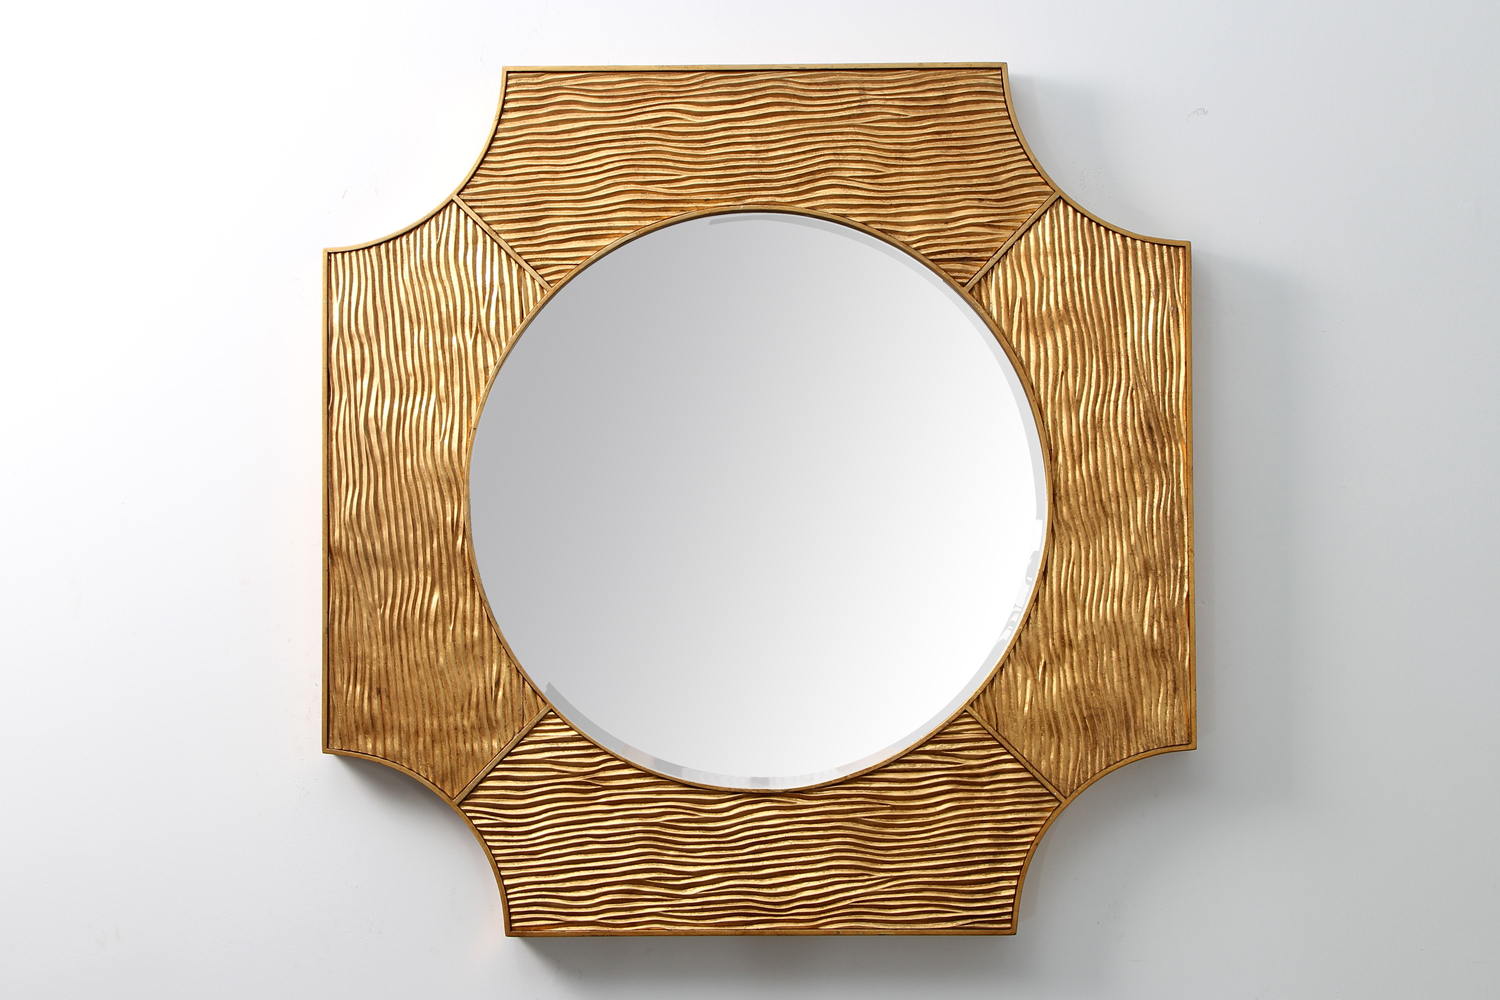 Lucas Wall Mirror – Antique Gold Intended For Current Gold Wall Mirrors (Gallery 15 of 20)